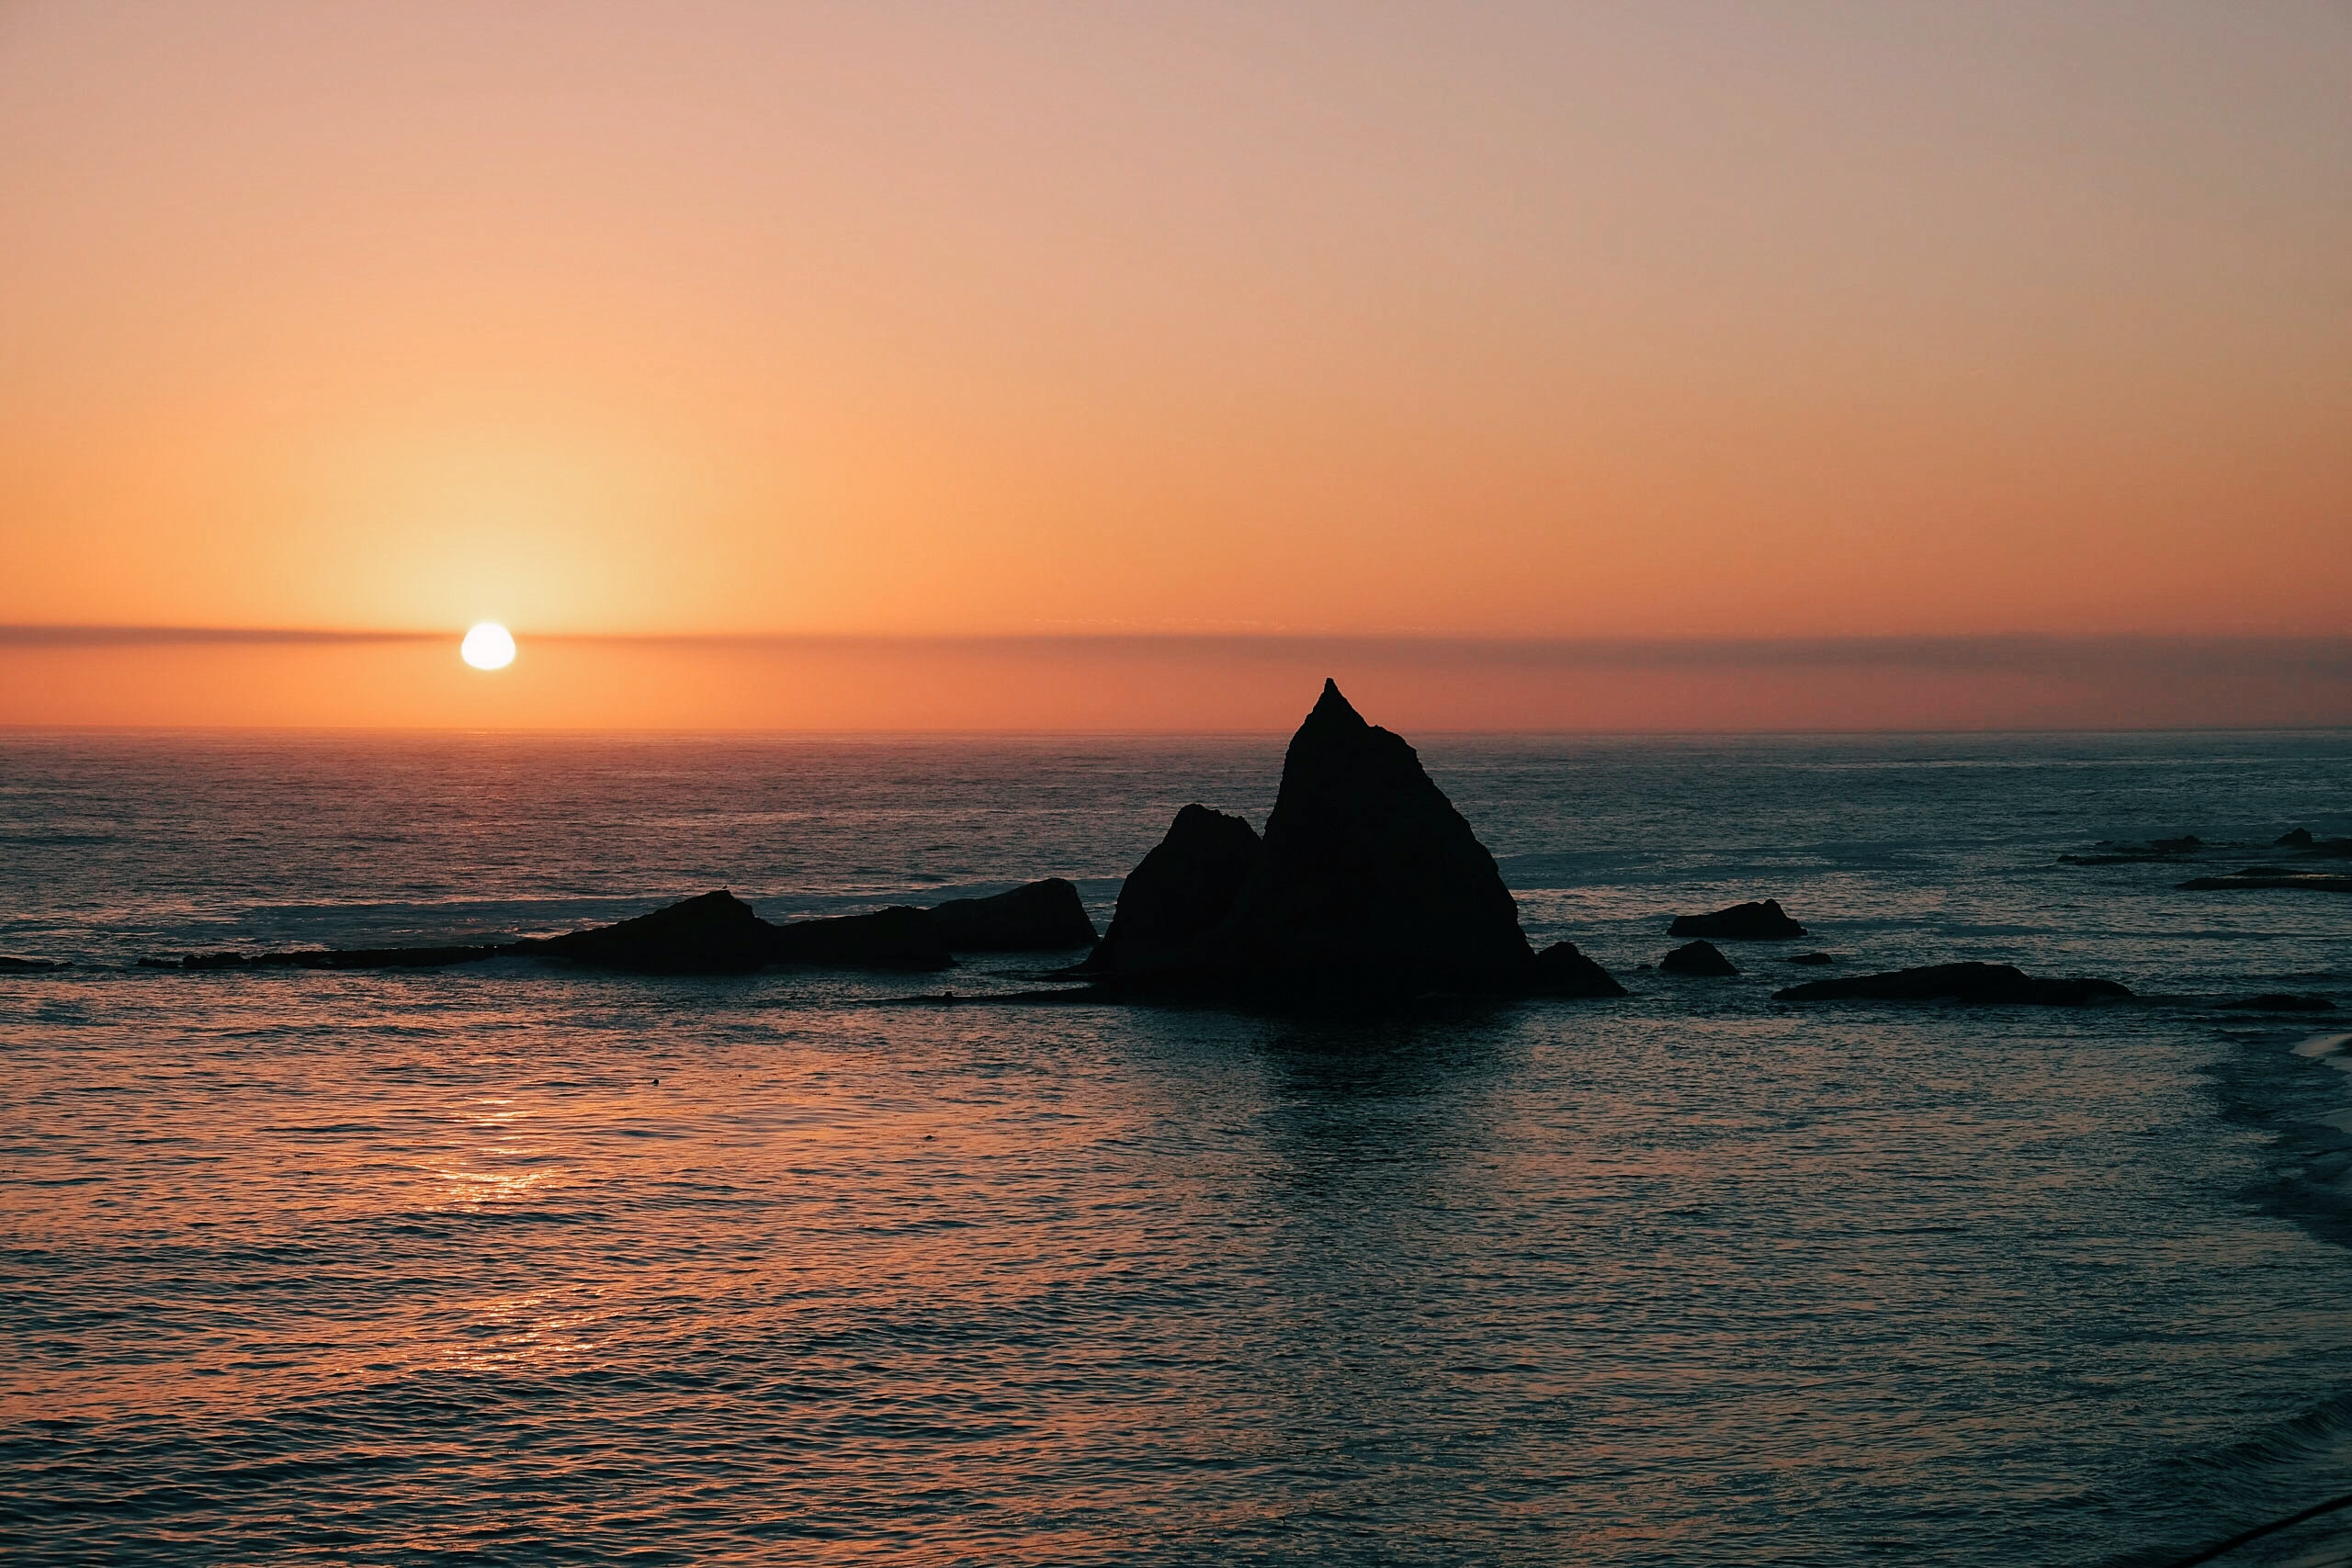 silhouette of rock formation surrounded by body of water at sunset